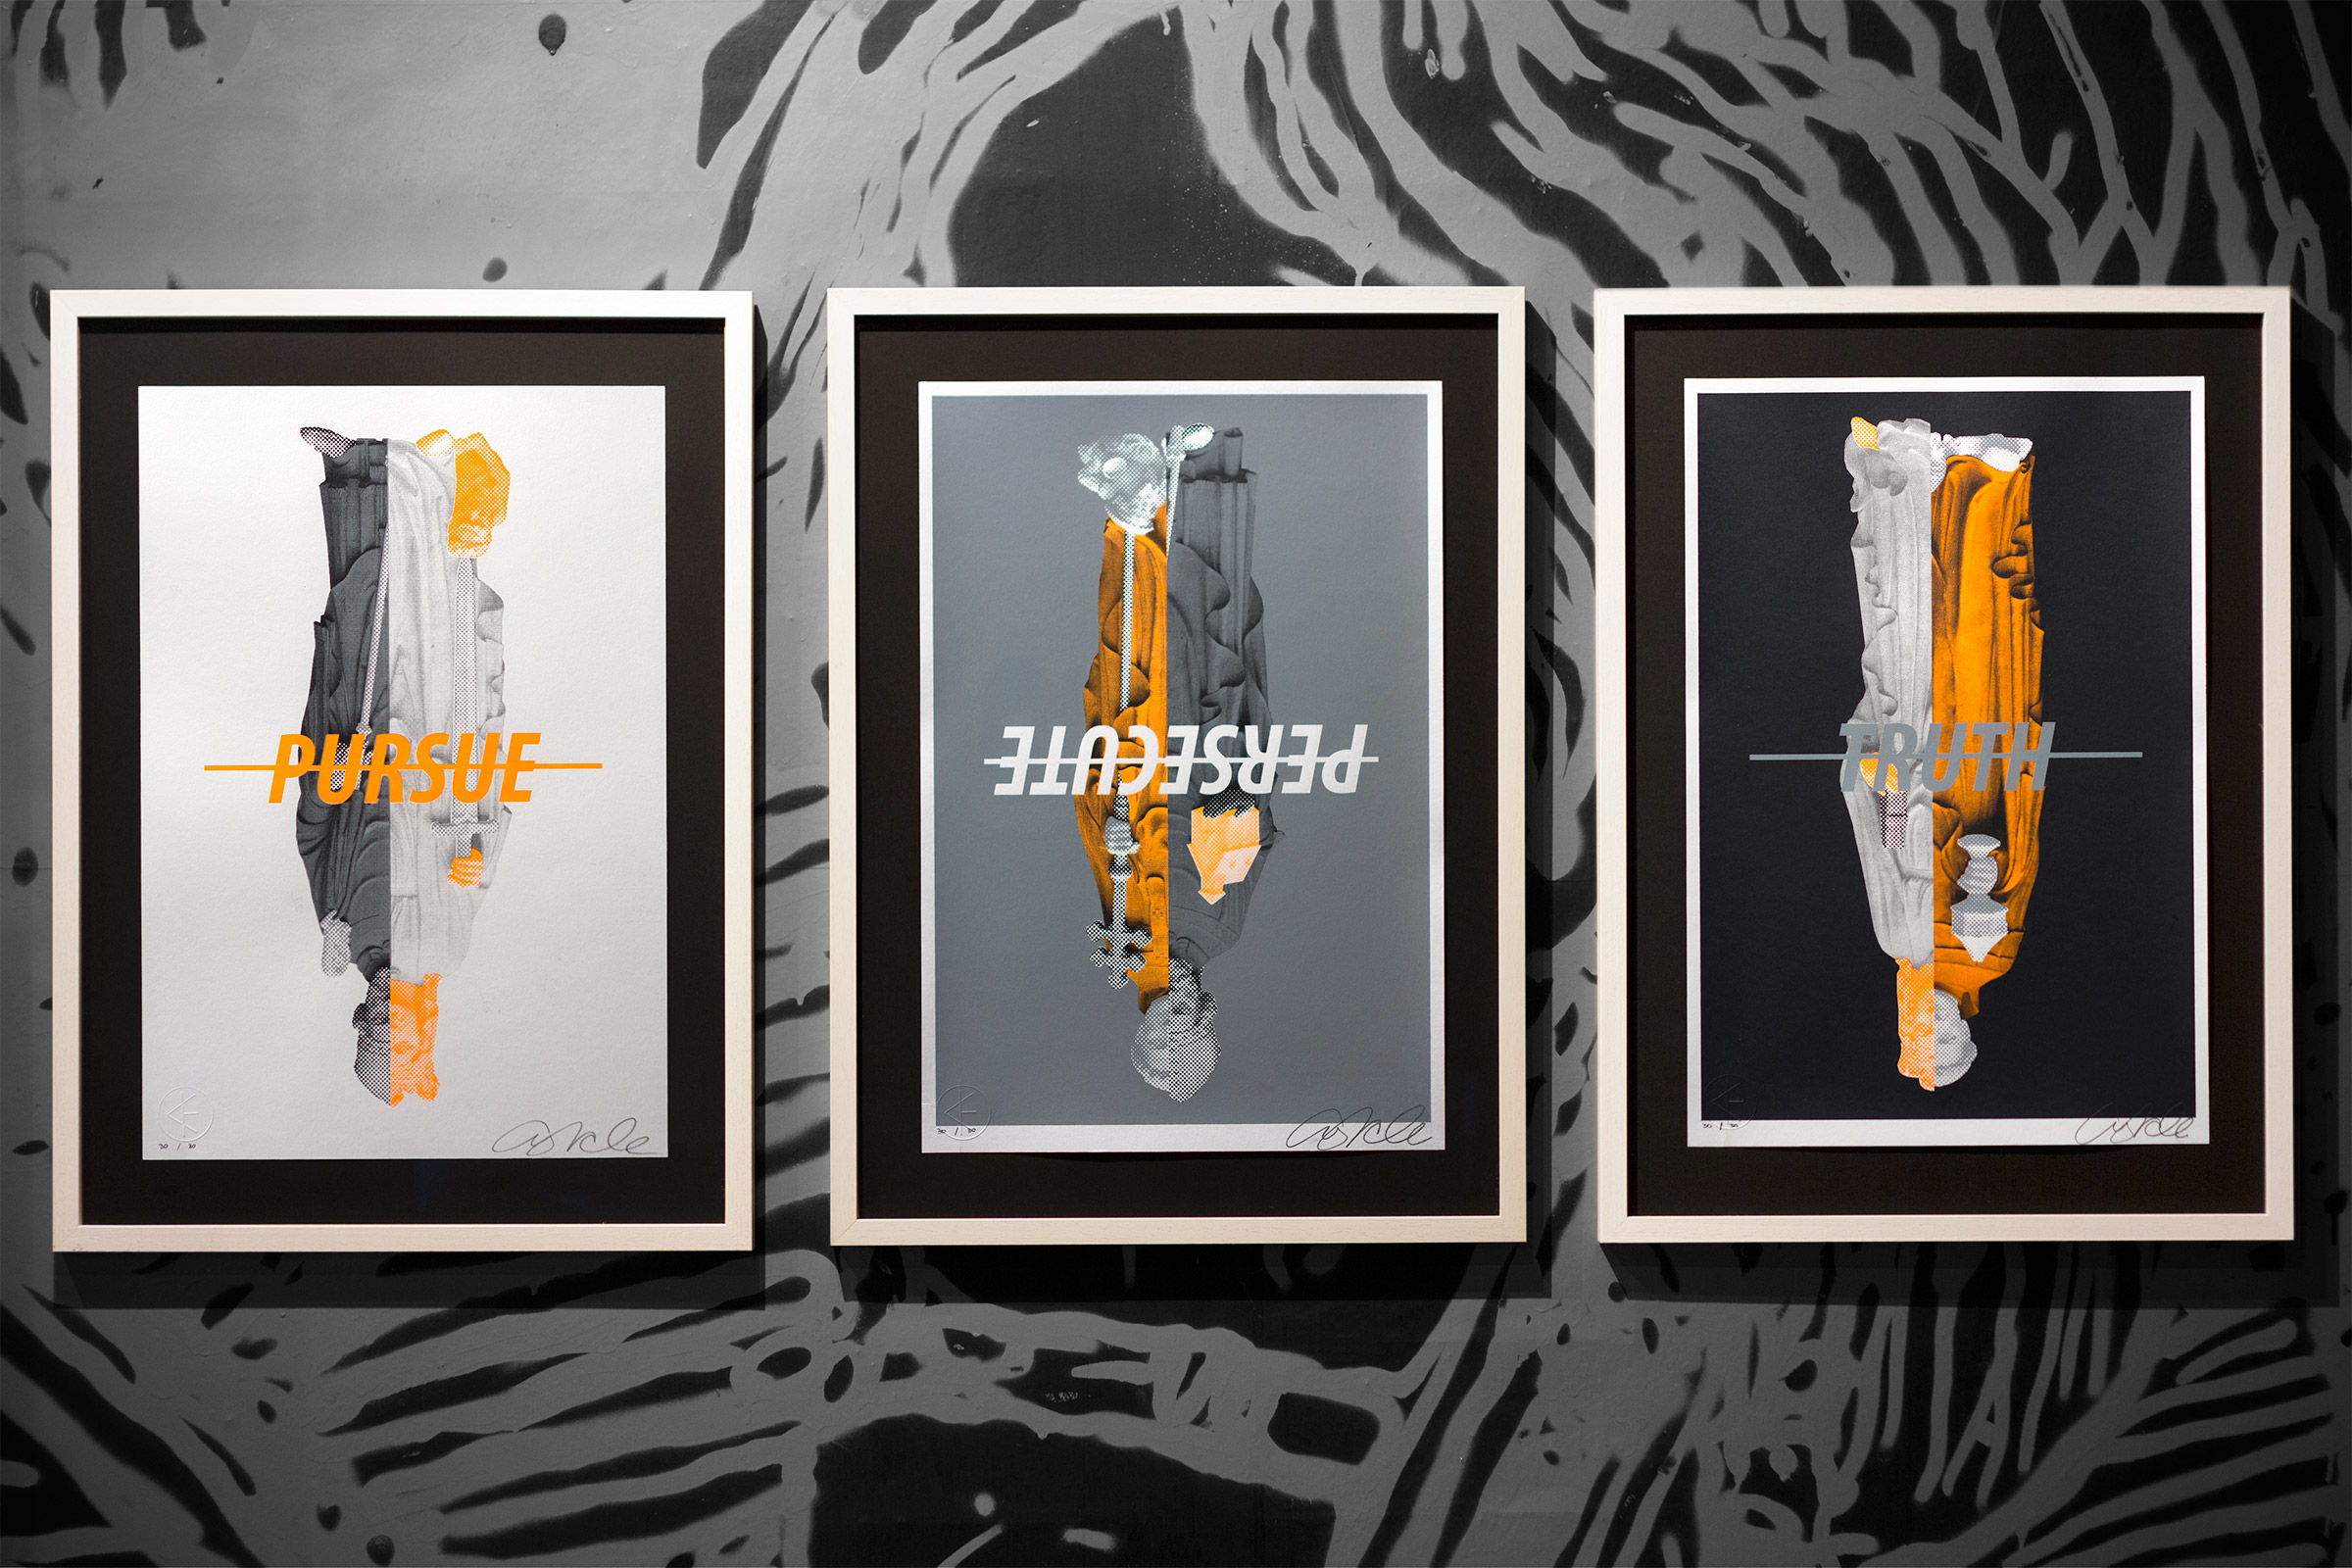 Prints by Cyrcle.  (3) 40 x 59cm Screenprints.  Ed of 30 S/N.  €250 ($340)